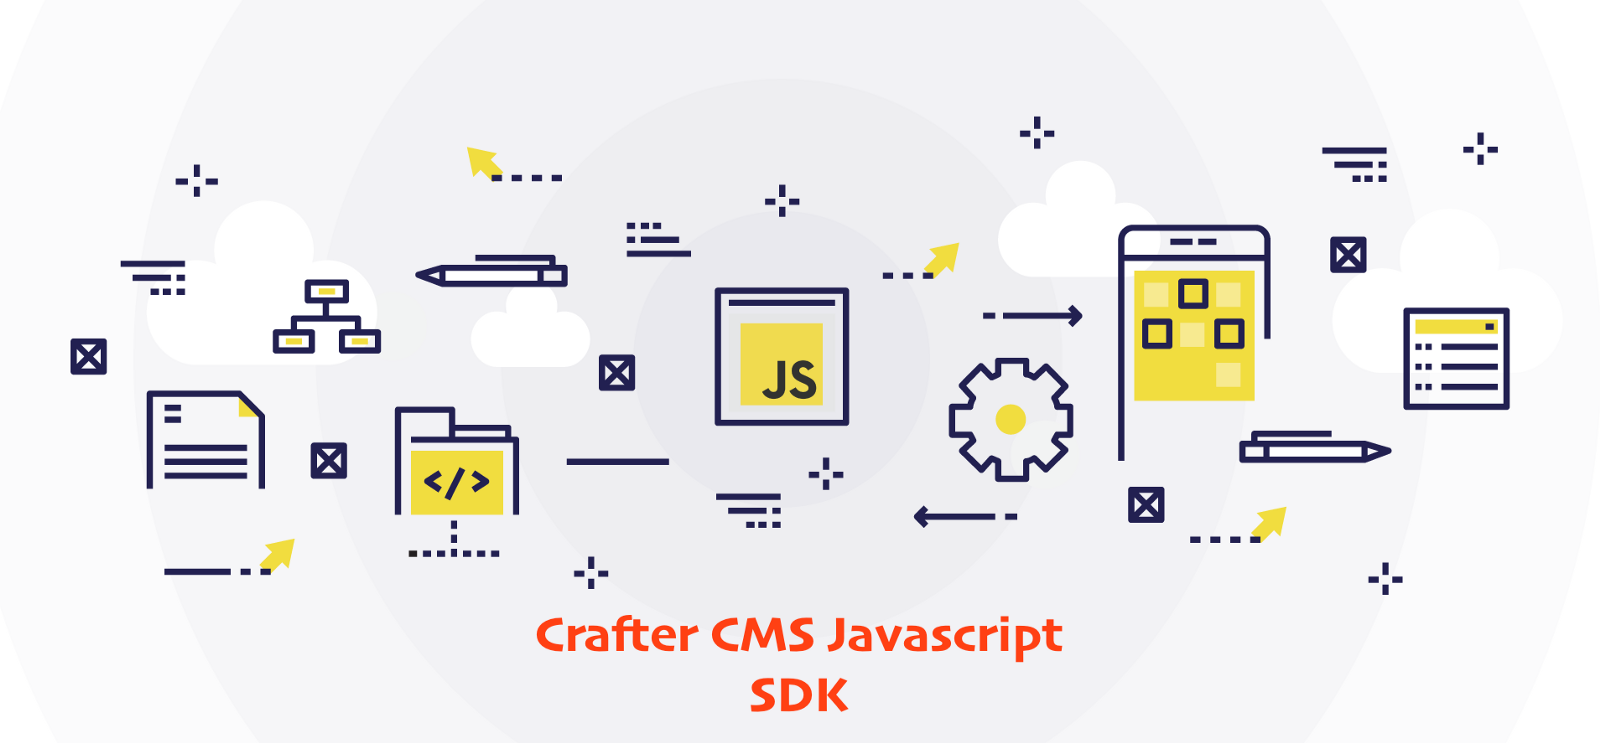 Introducing Crafter CMS Javascript SDK